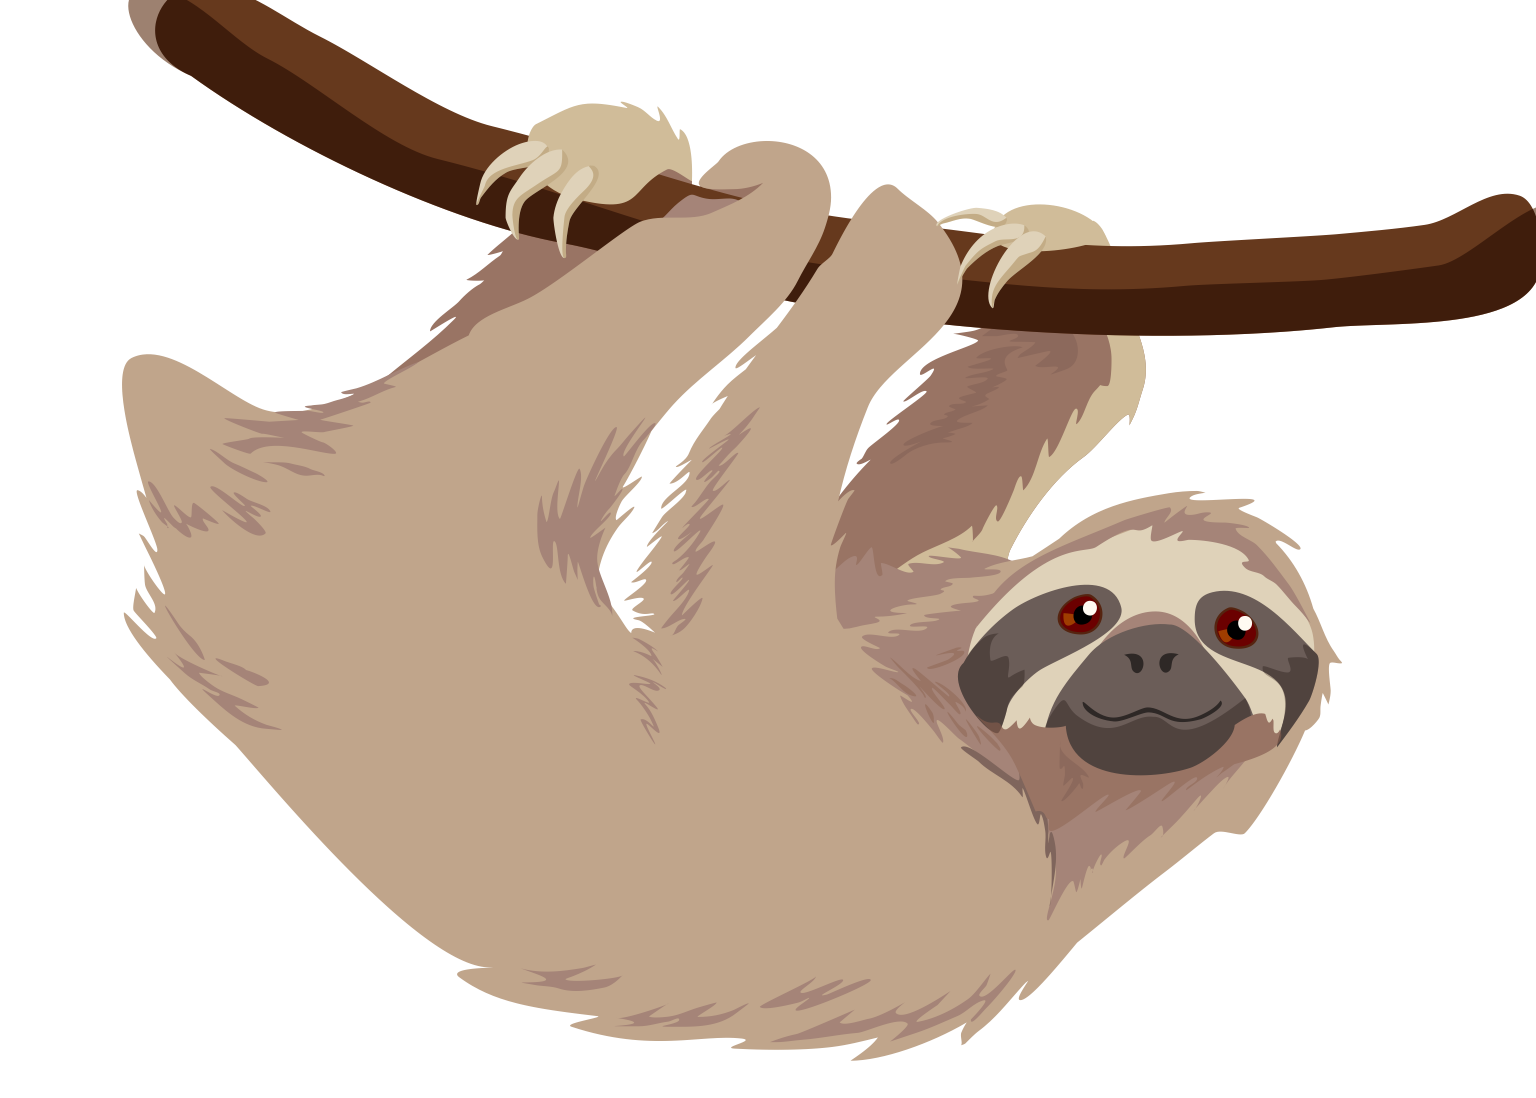 Three toed sloth | Veronica Guzzardi